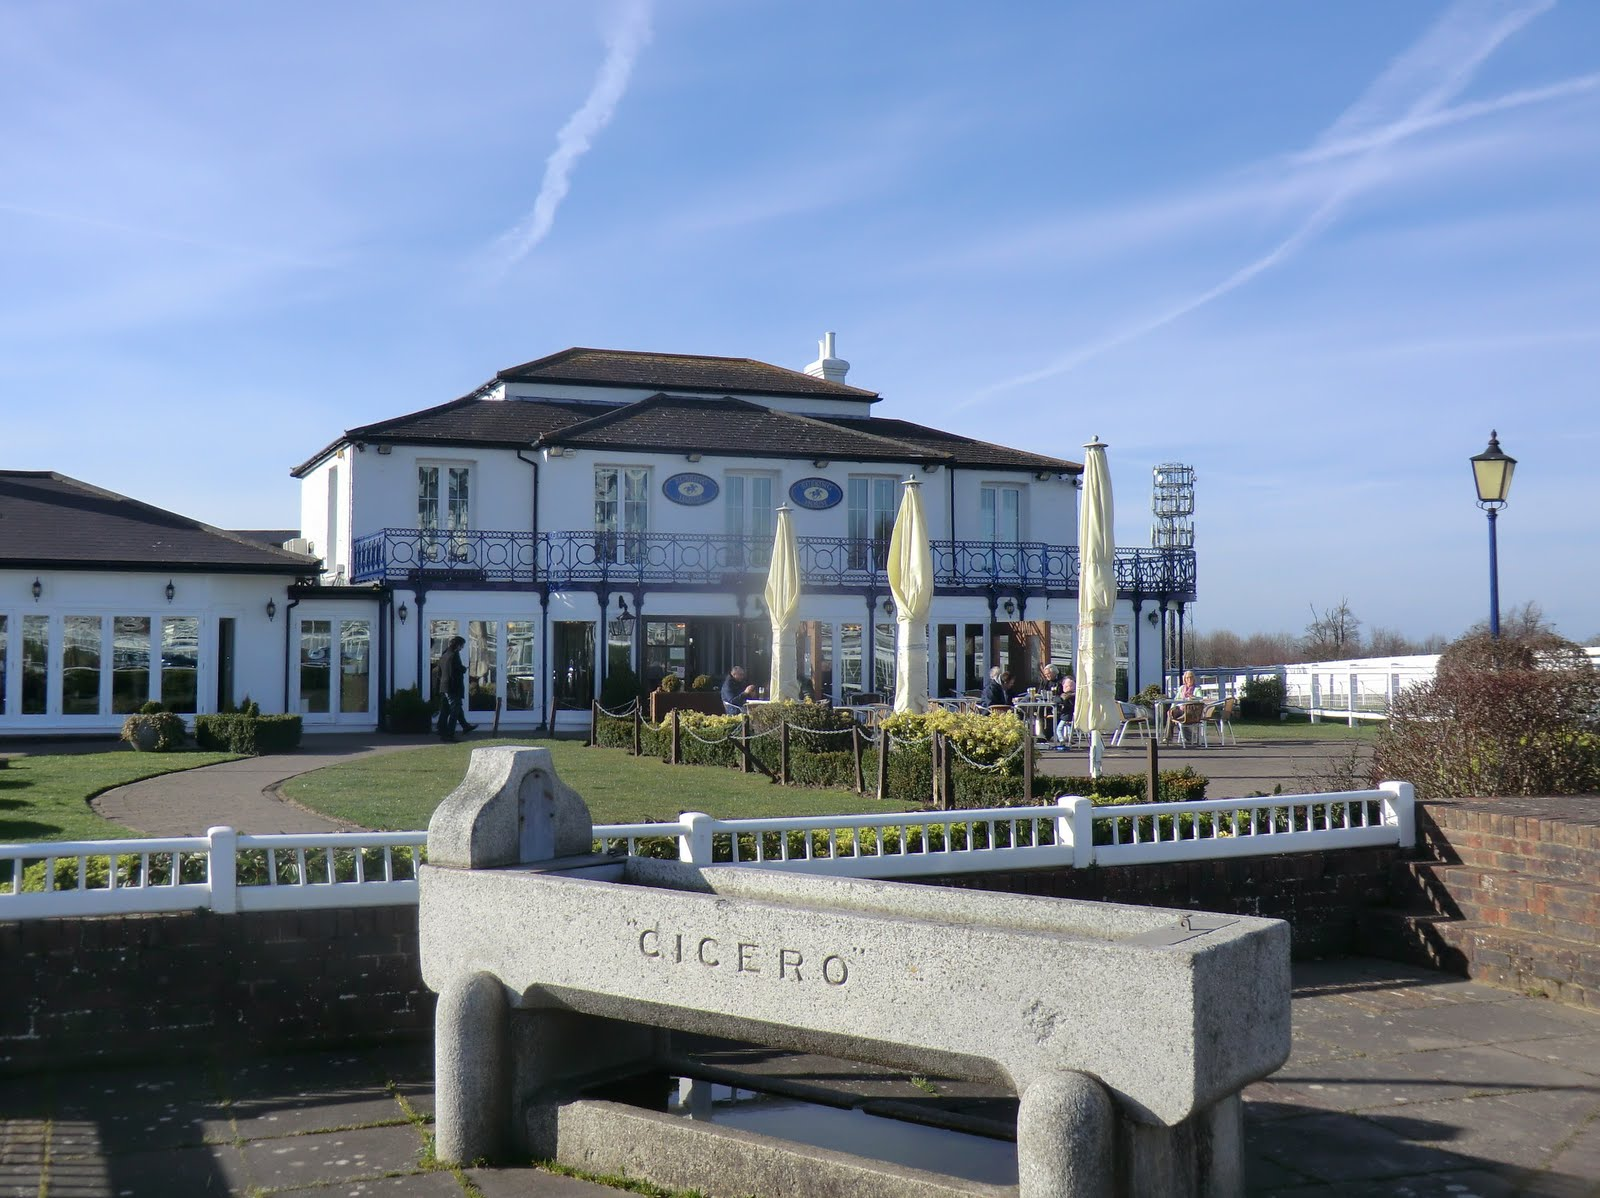 CIMG3667 The Rubbing House pub, Epsom Downs